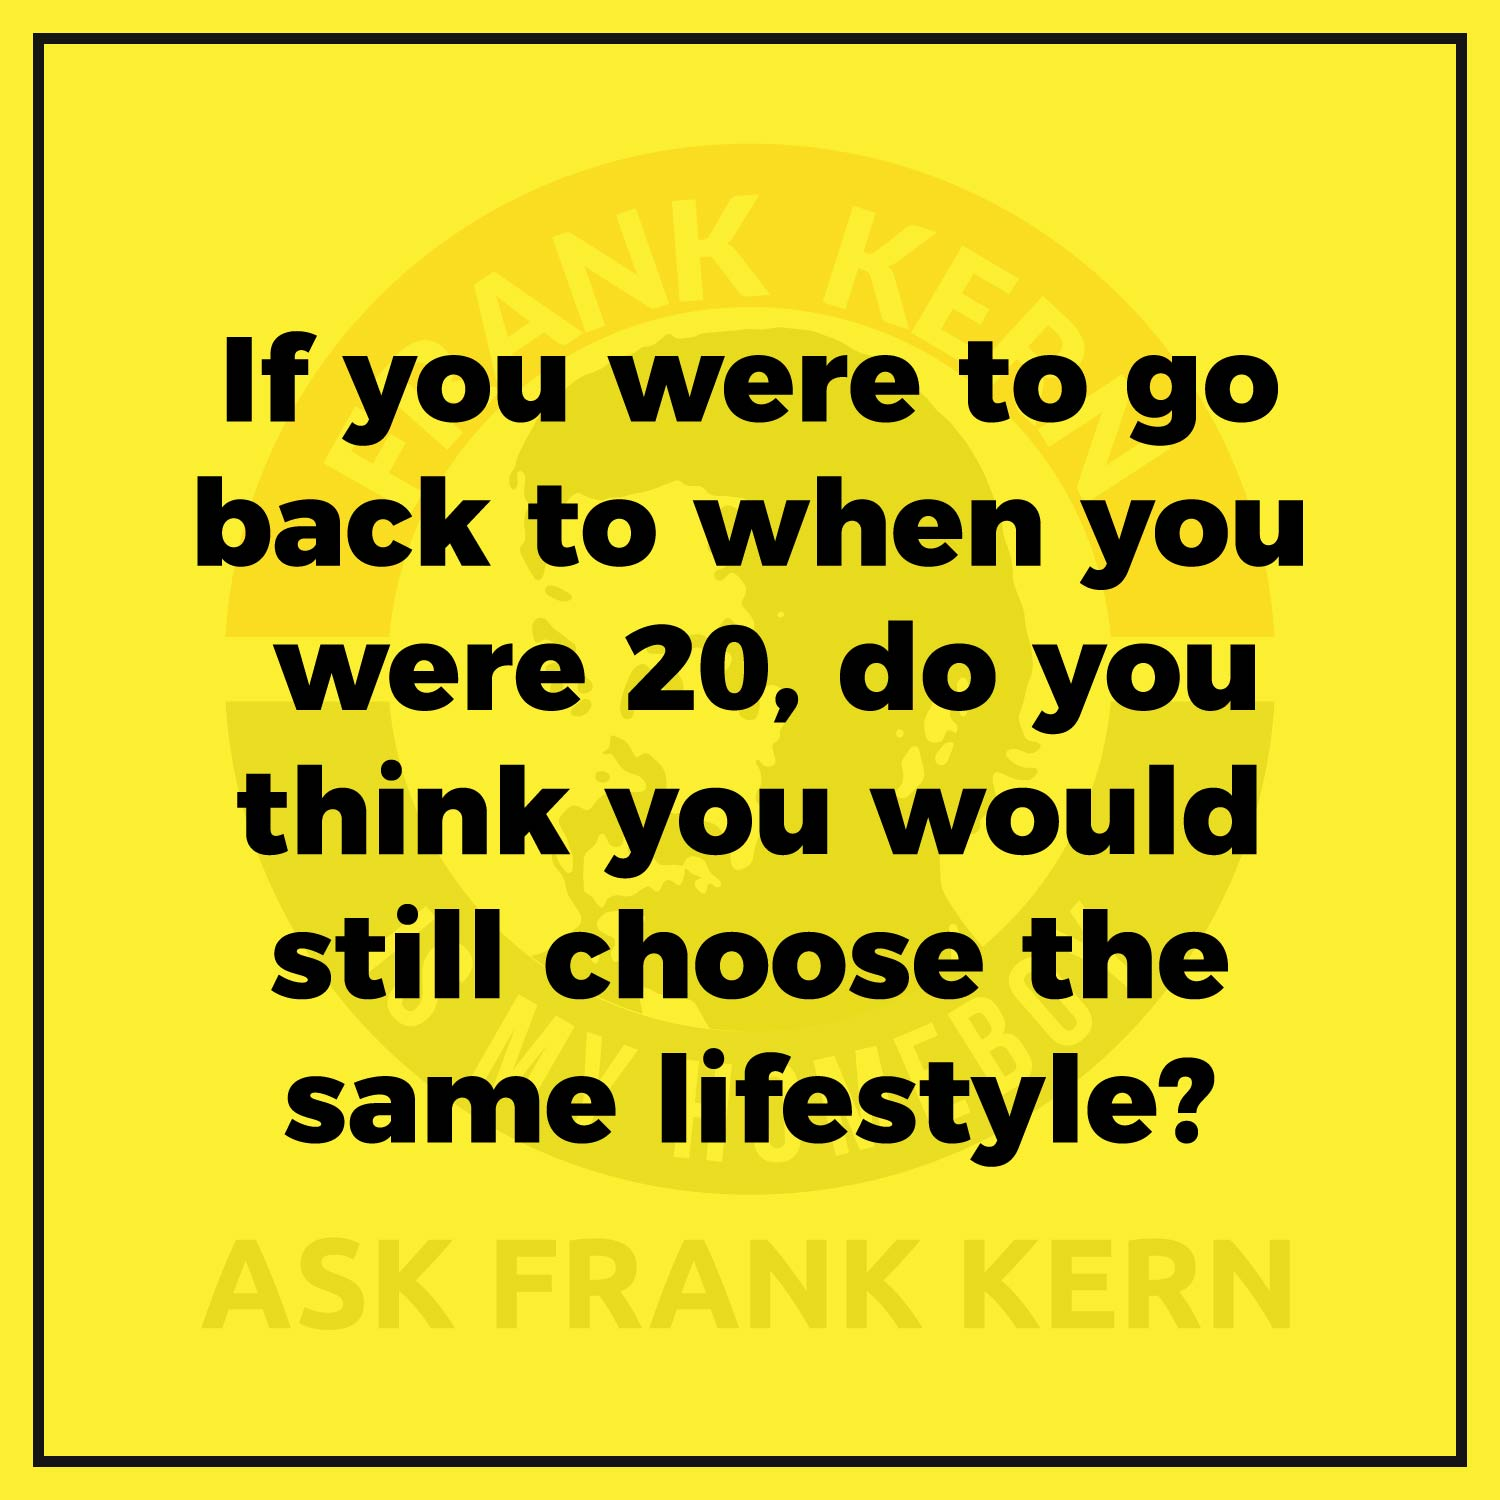 If you were to go back to when you were 20, do you think you would still choose the same lifestyle?